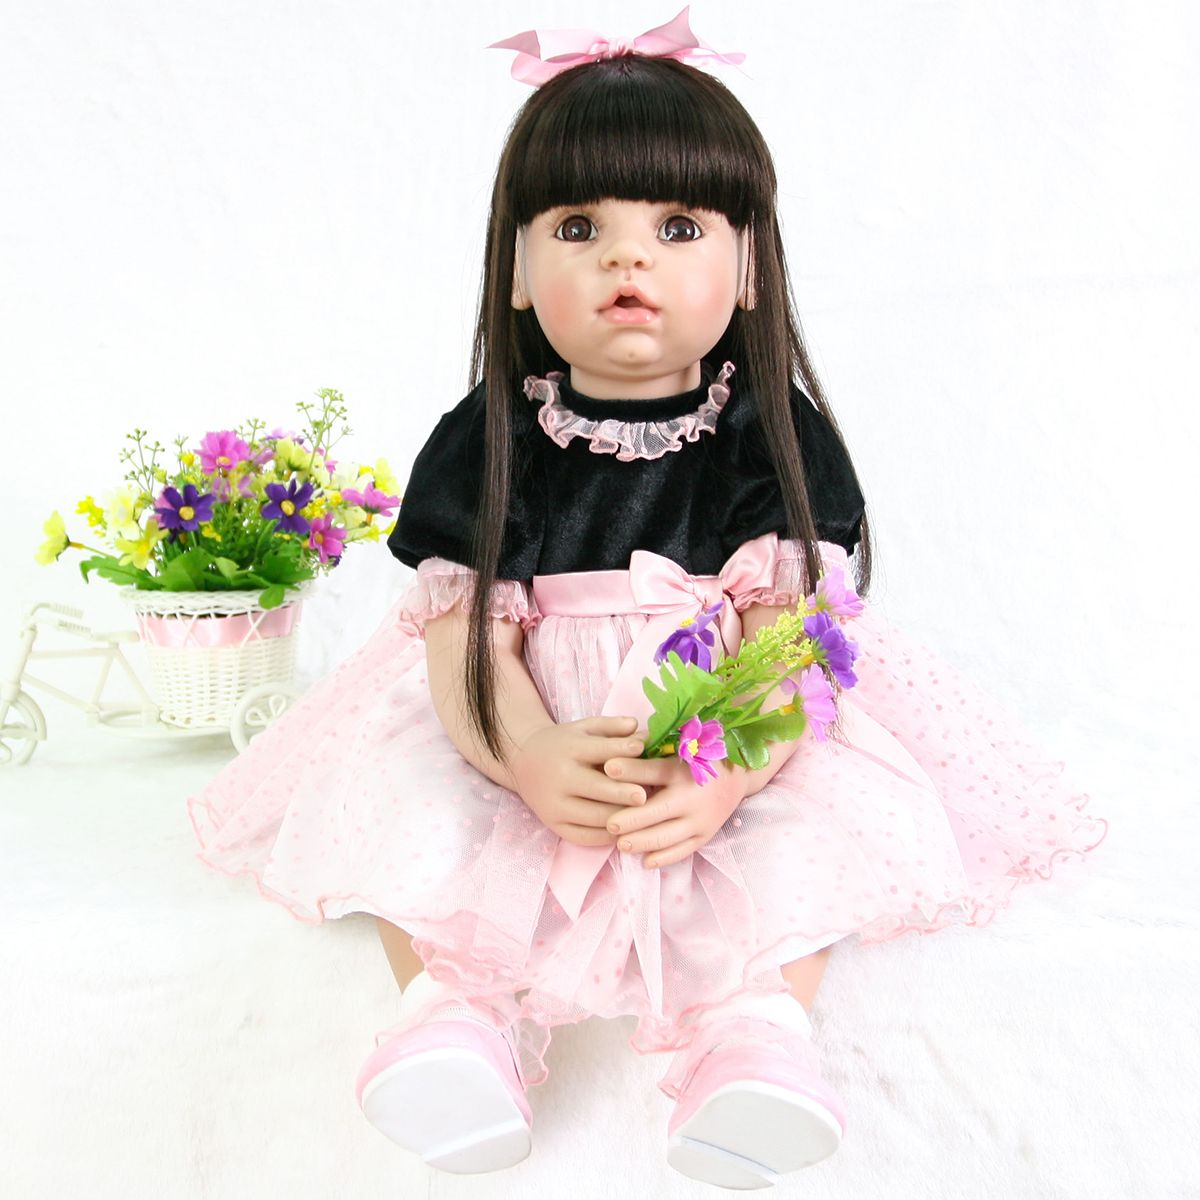 Toddler Dolls Reborn Silicone Baby Blonde Hair Real Girl Princess for Child 24in